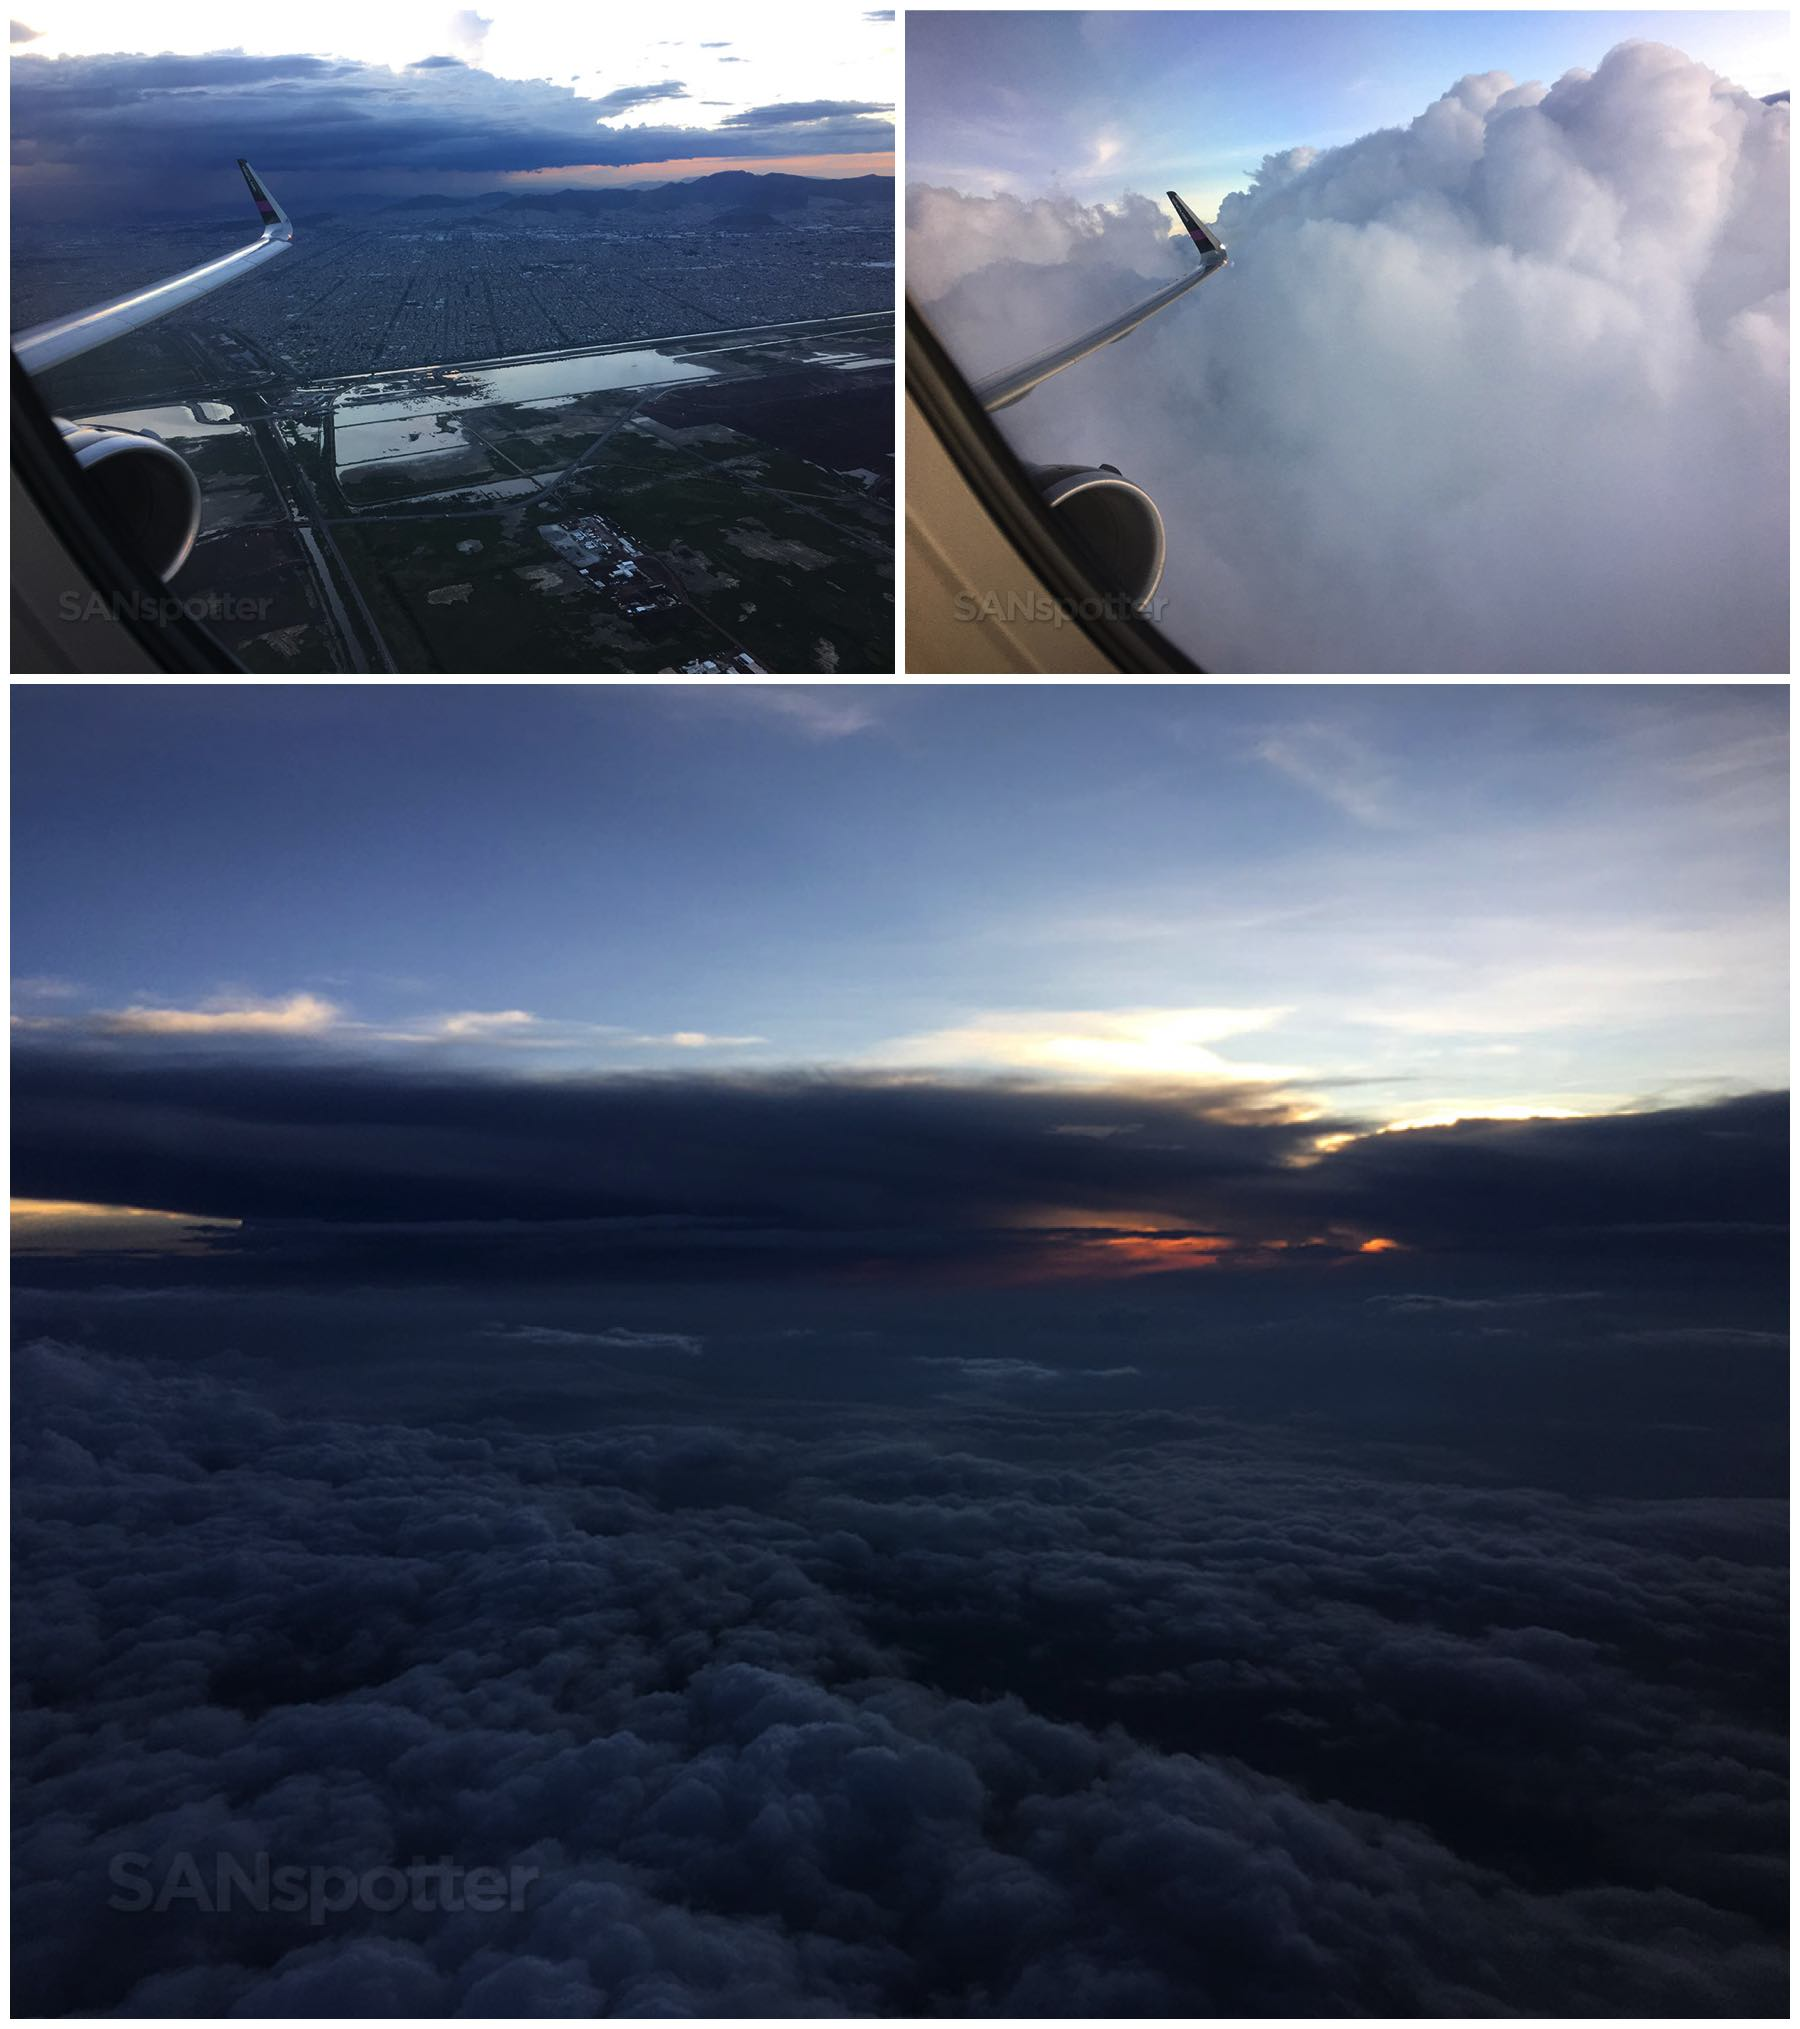 Flying through clouds and sunset